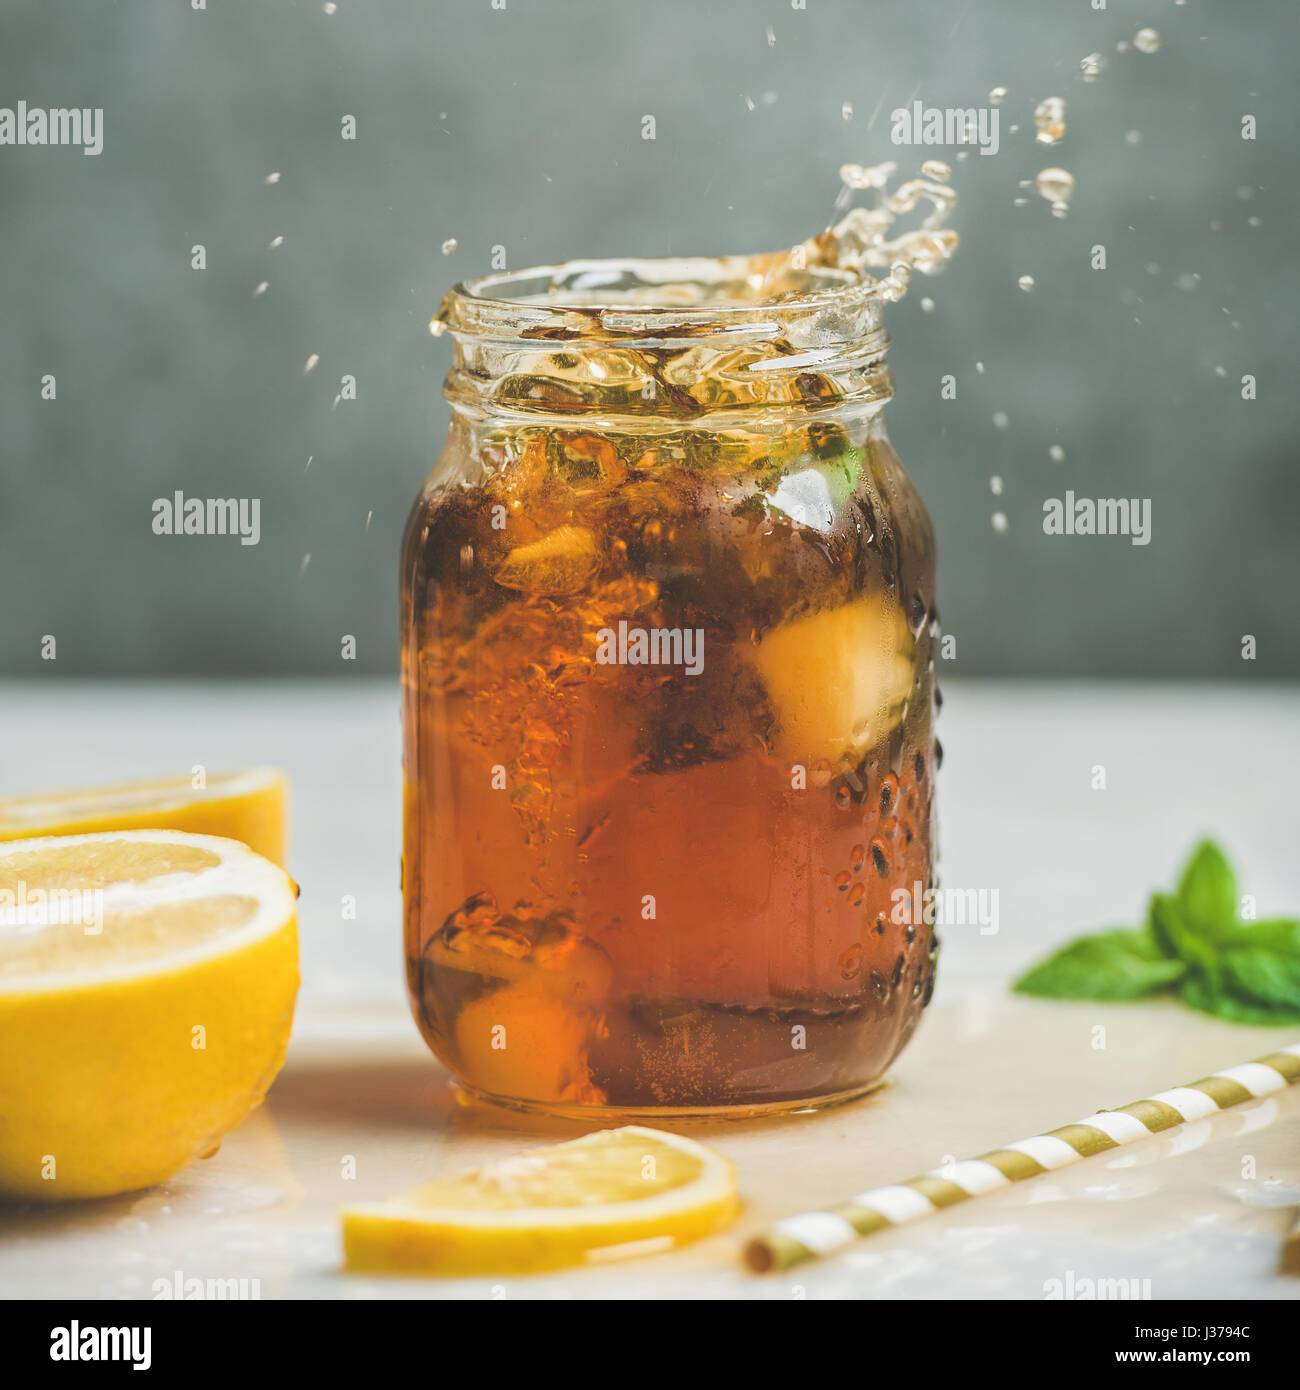 Iced tea with fresh herbs in jar with splashes - Stock Image